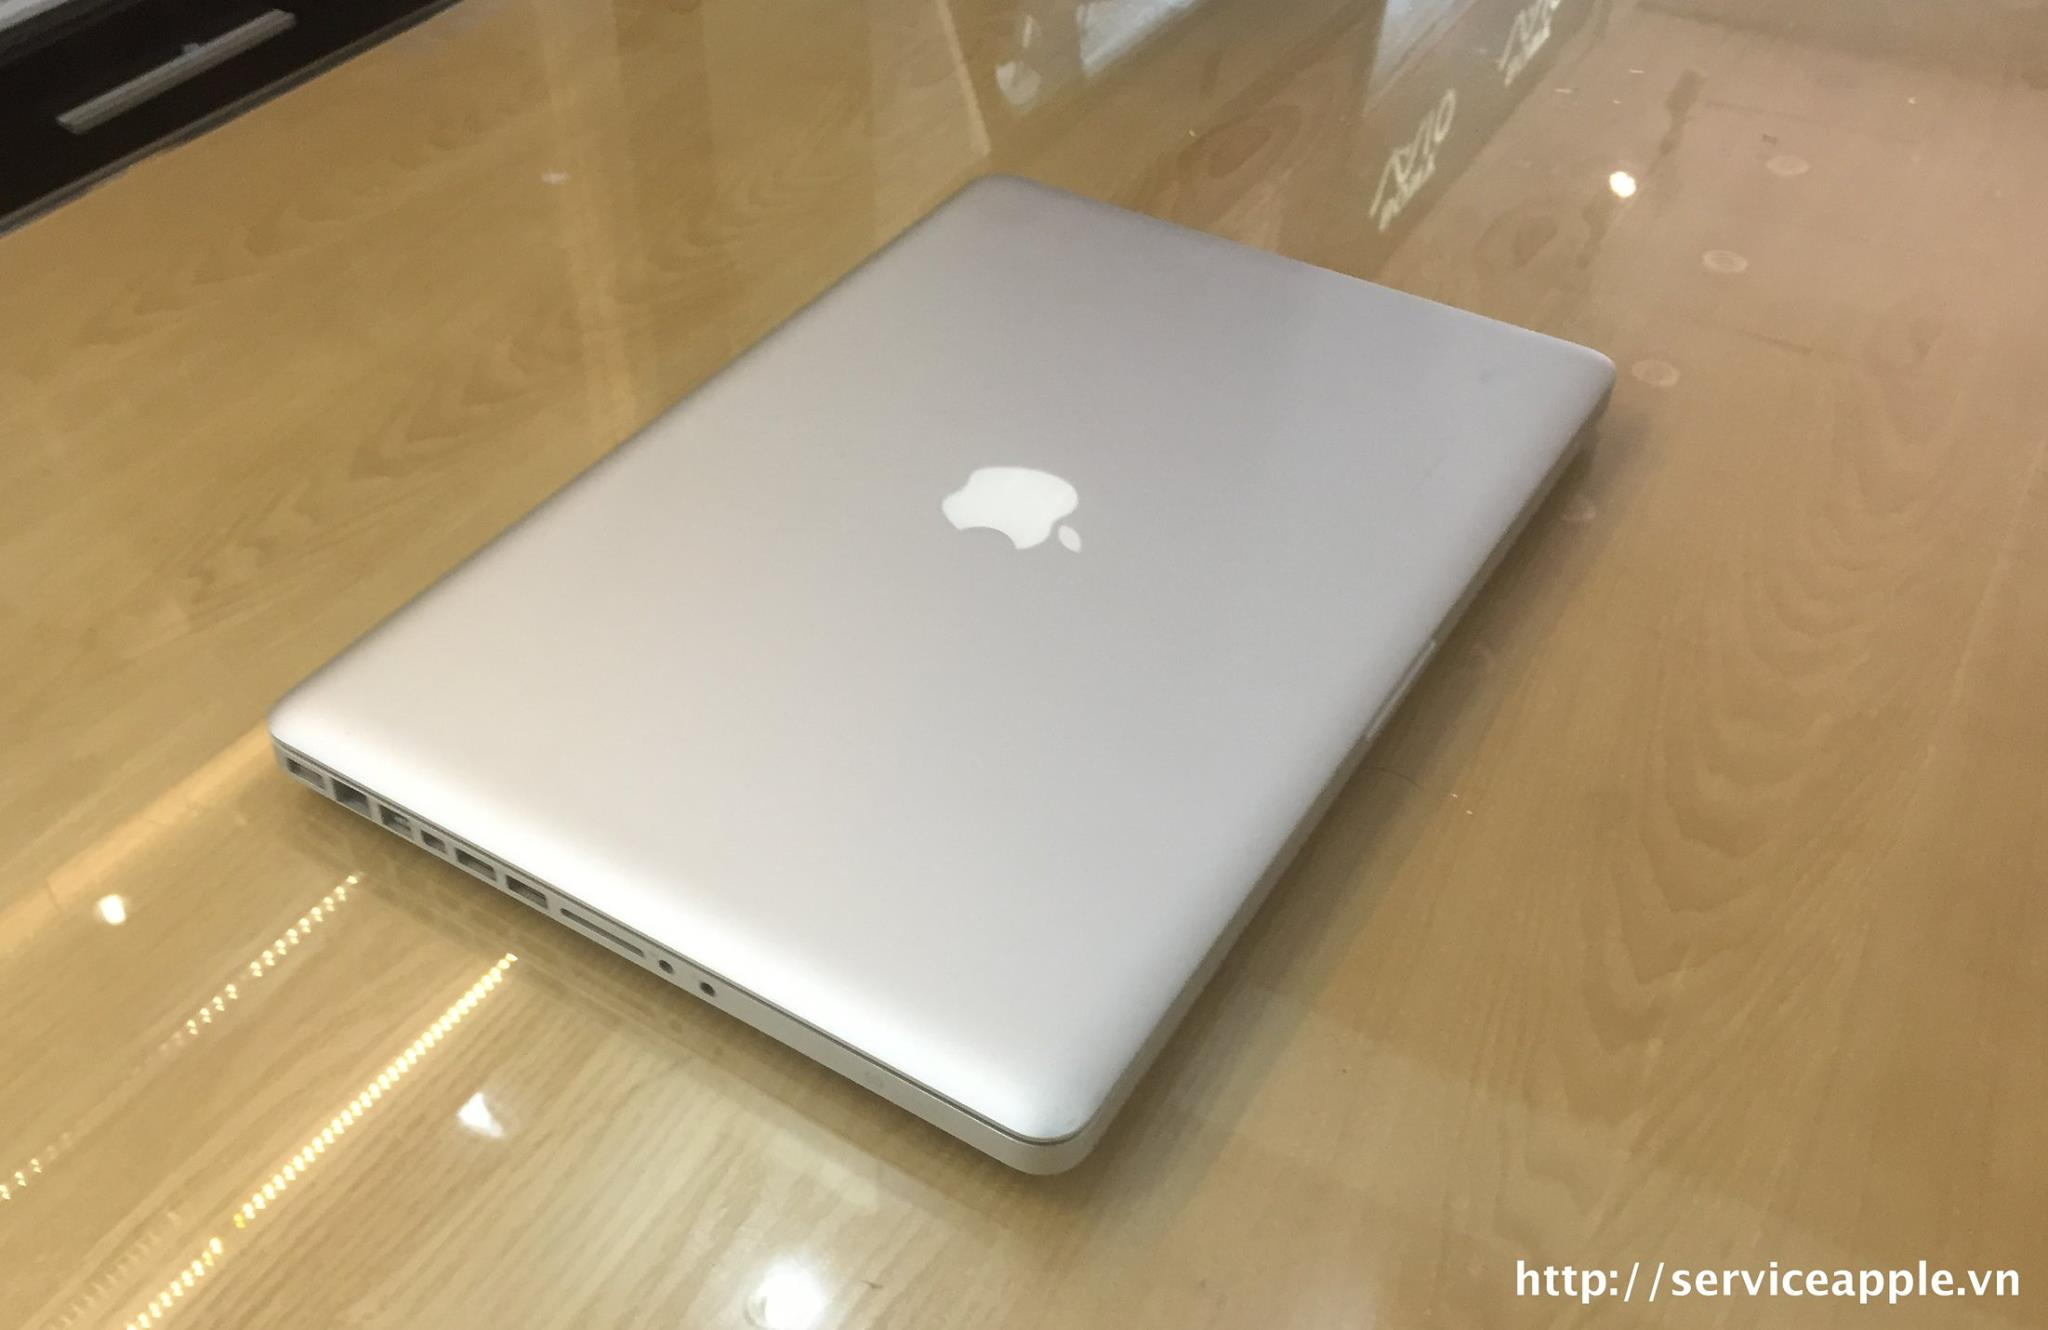 Macbook Pro A1286 MC985_3.jpg